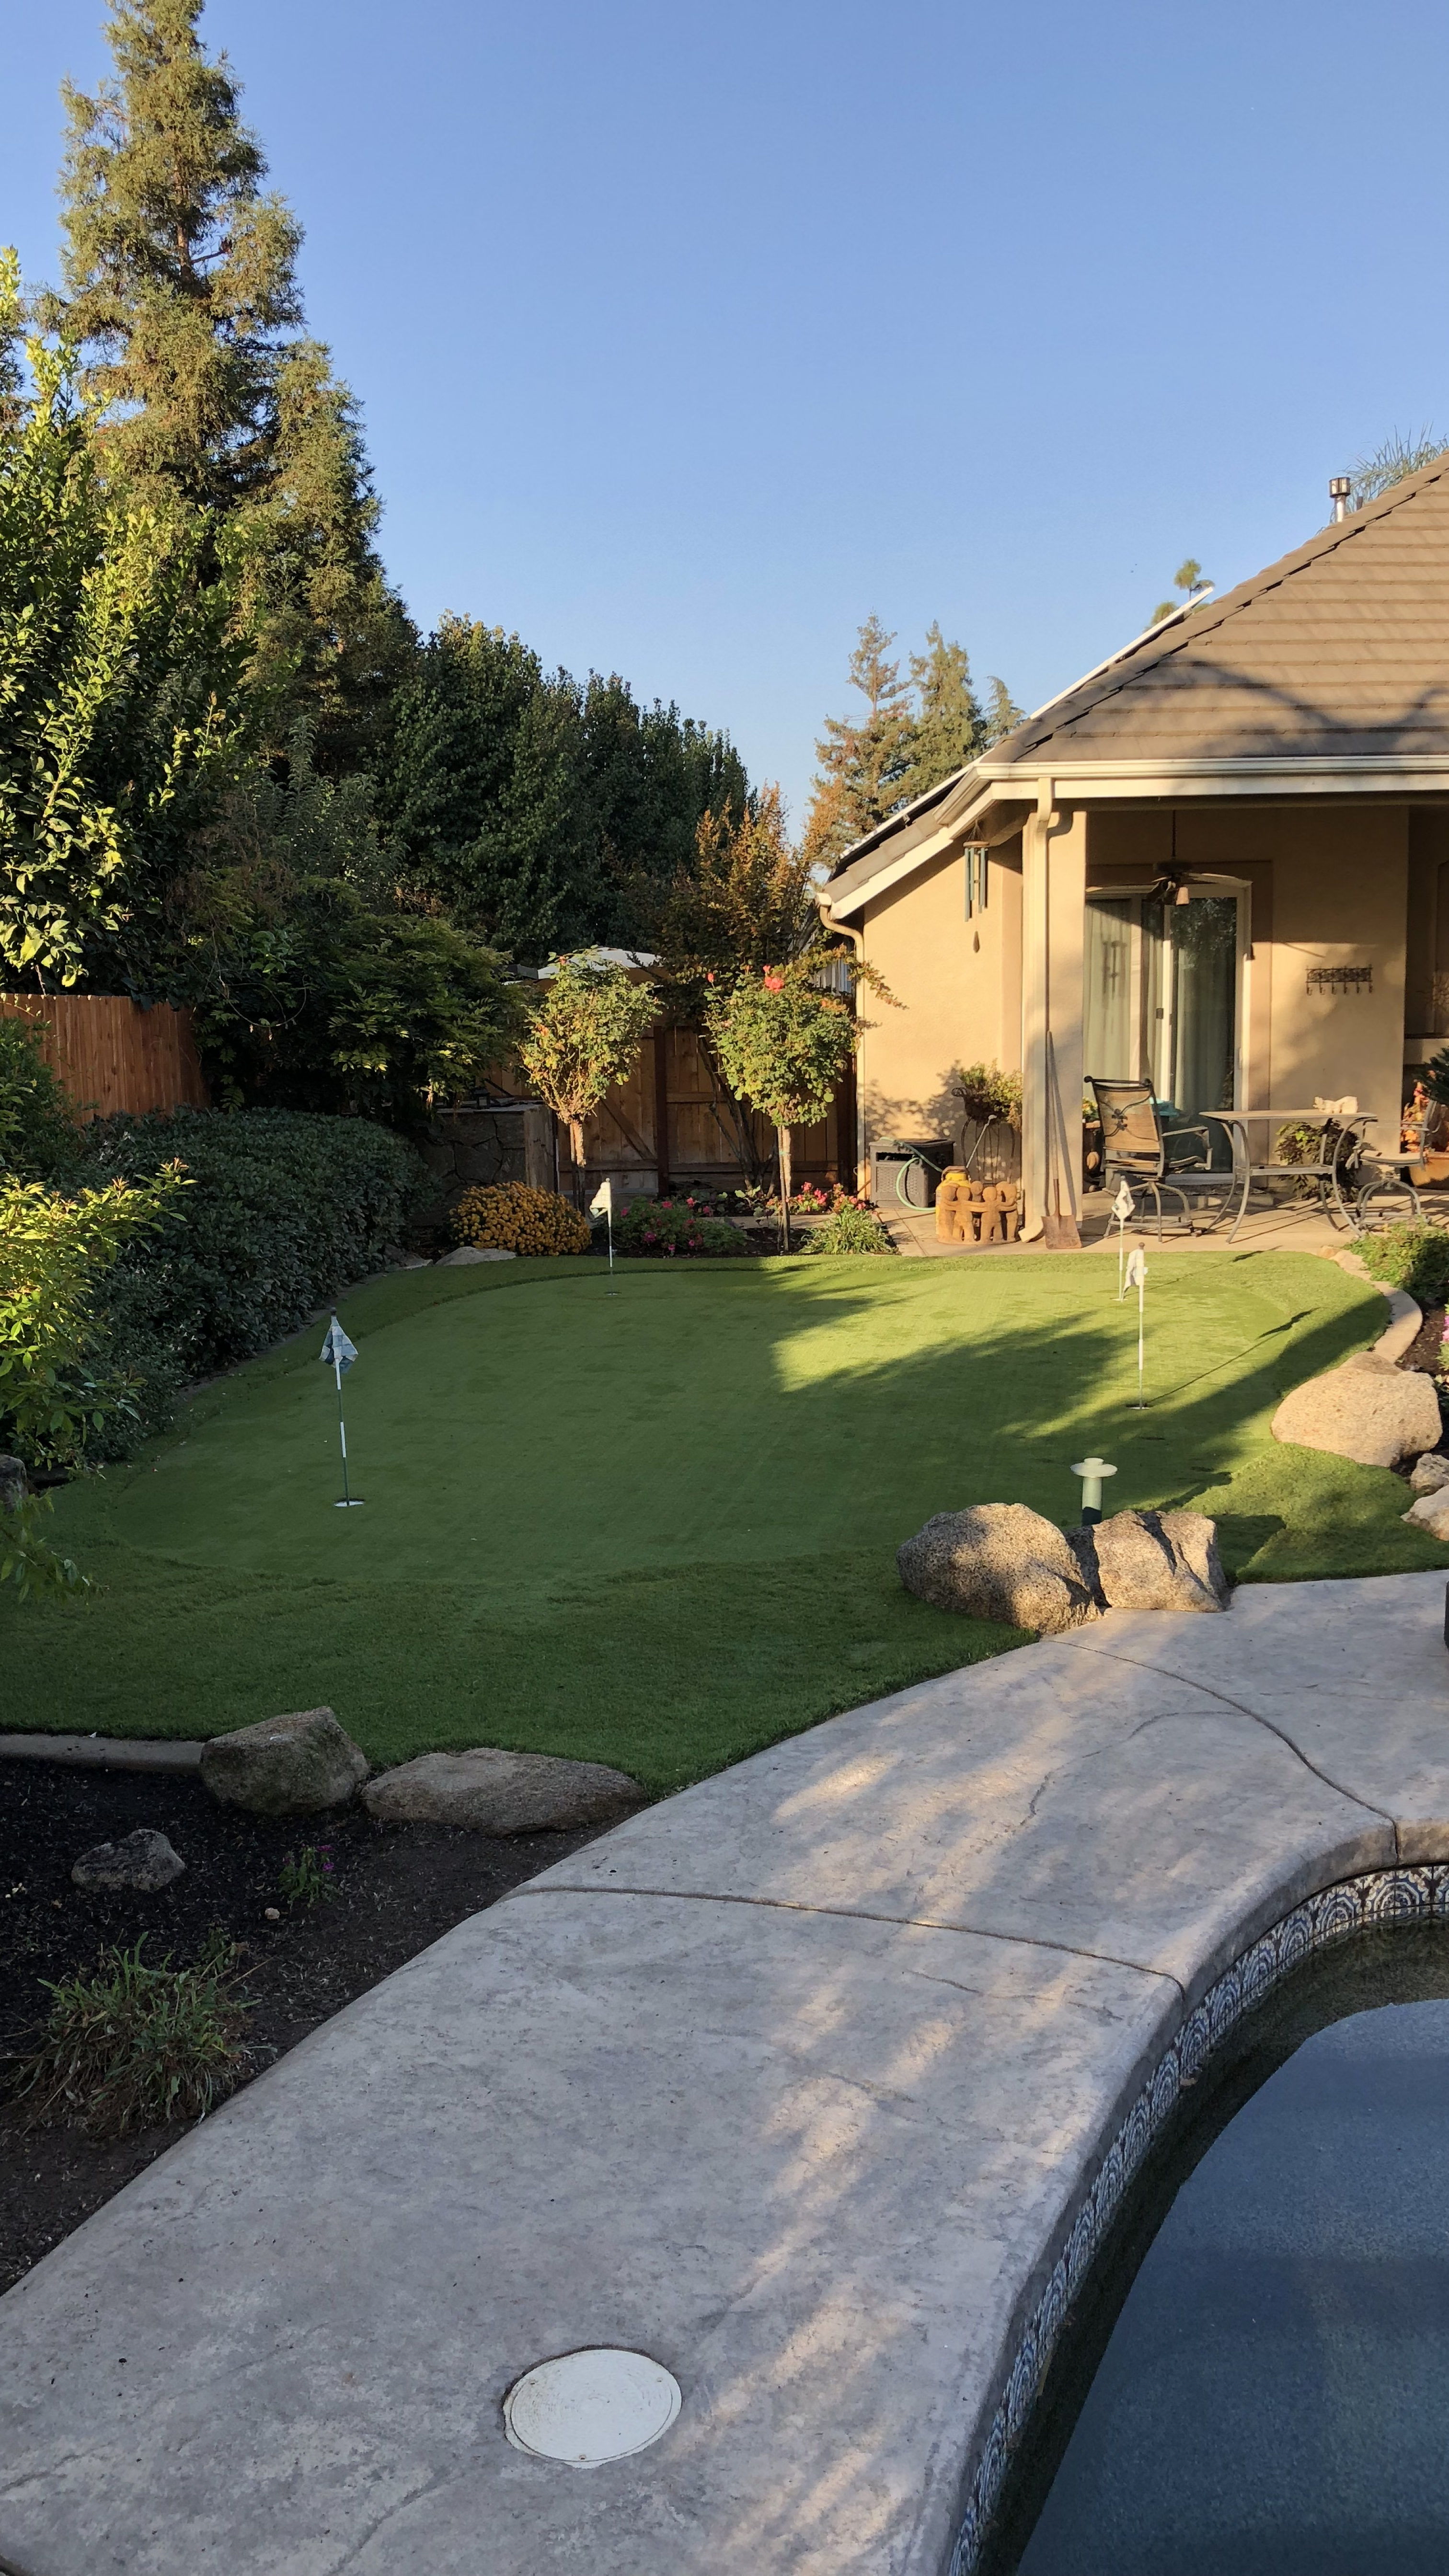 All Natural-75 fake grass for dogs,how much is fake grass,cost of fake grass,fake grass lowes,lowes fake grass,artificial grass cost,fake grass for dogs,artificial grass for dogs,home depot artificial grass,artifical grass,puppy grass,puppy turf,artificial turf backyard,backyard pets,astroturf yard,backyard artificial grass,astro turf yard cost,how much is fake grass,how much does artificial turf